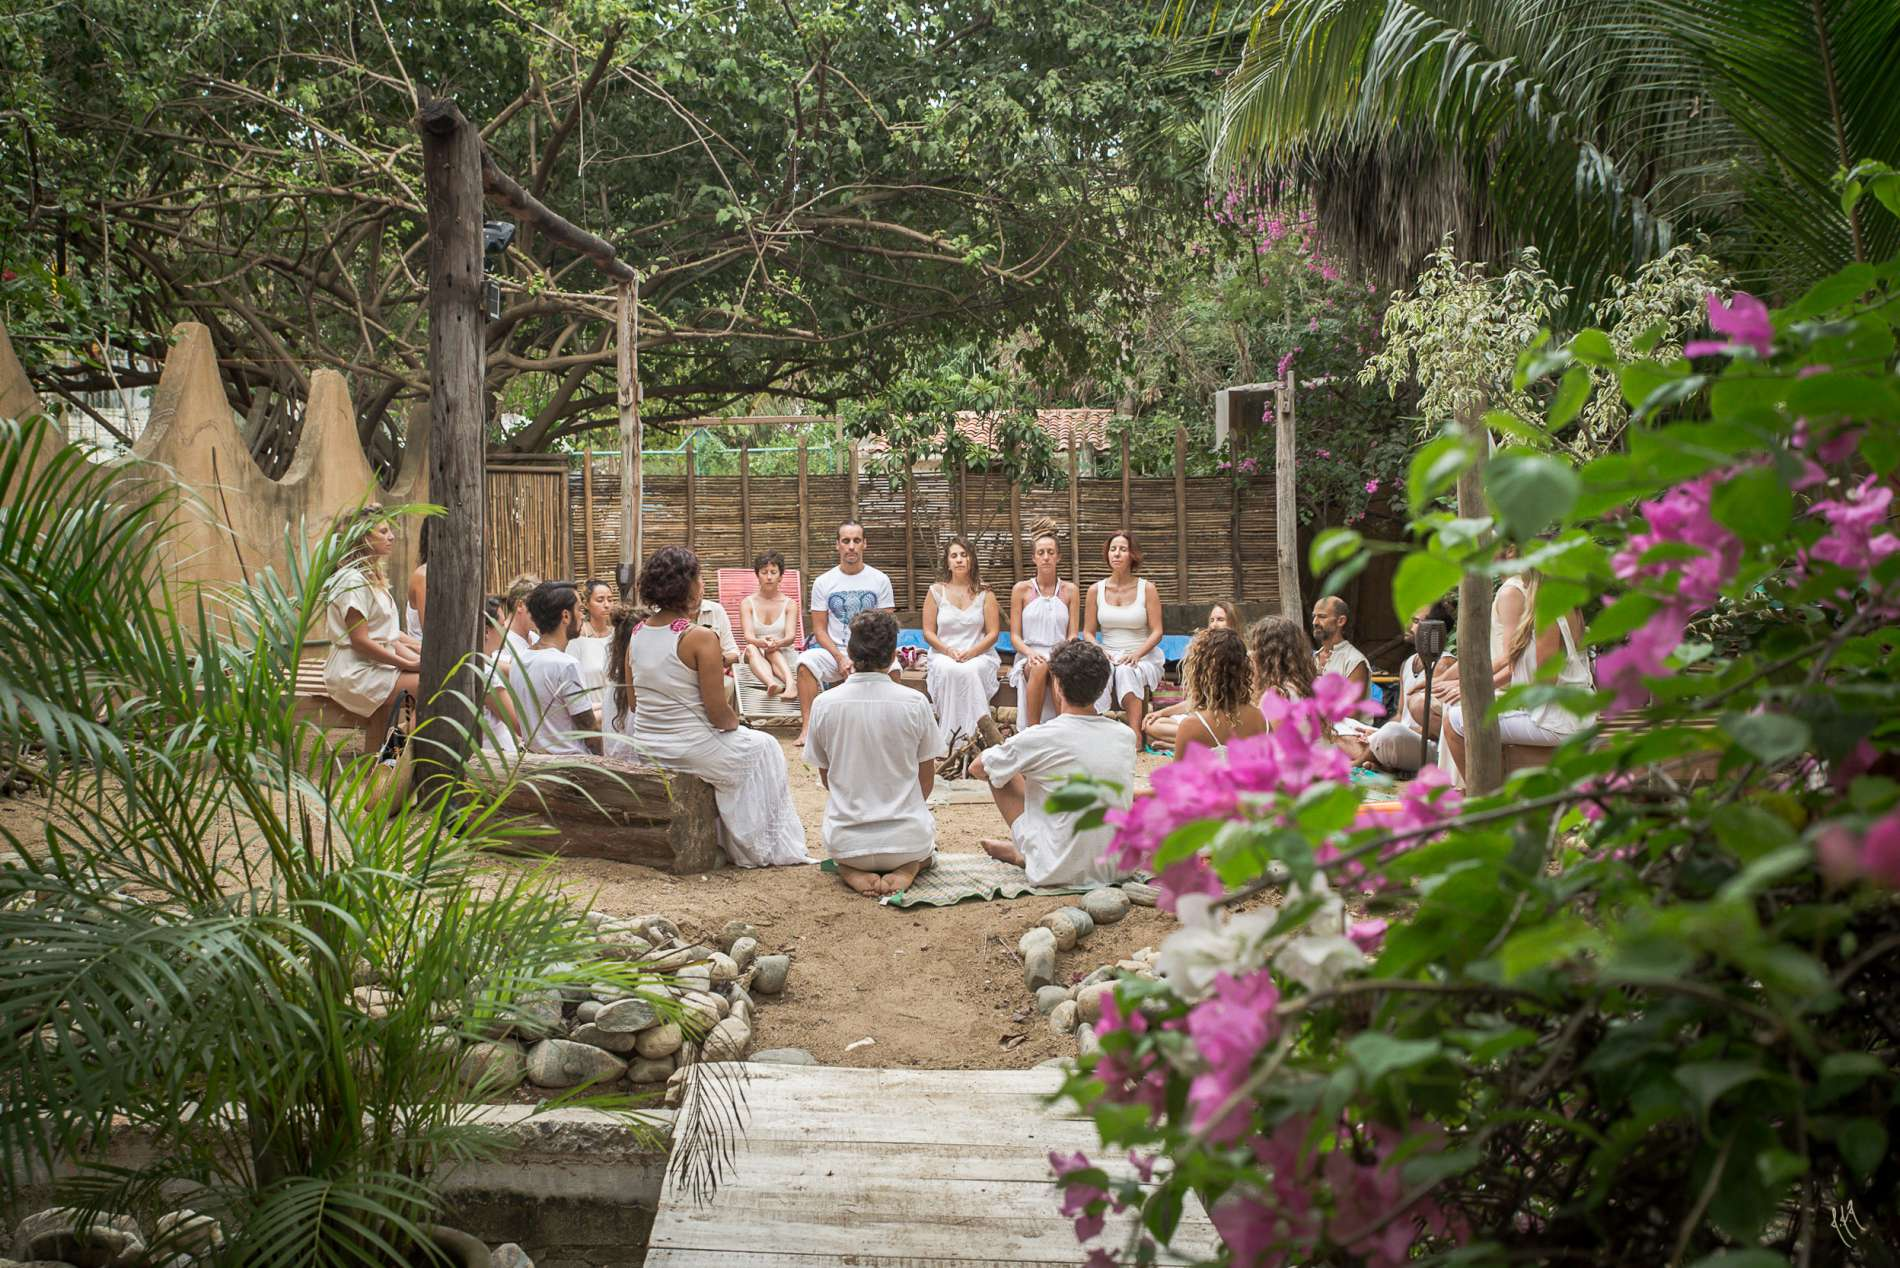 yoga group wearing white sitting in a circle in a beautiful patio surrounded by trees and flowers